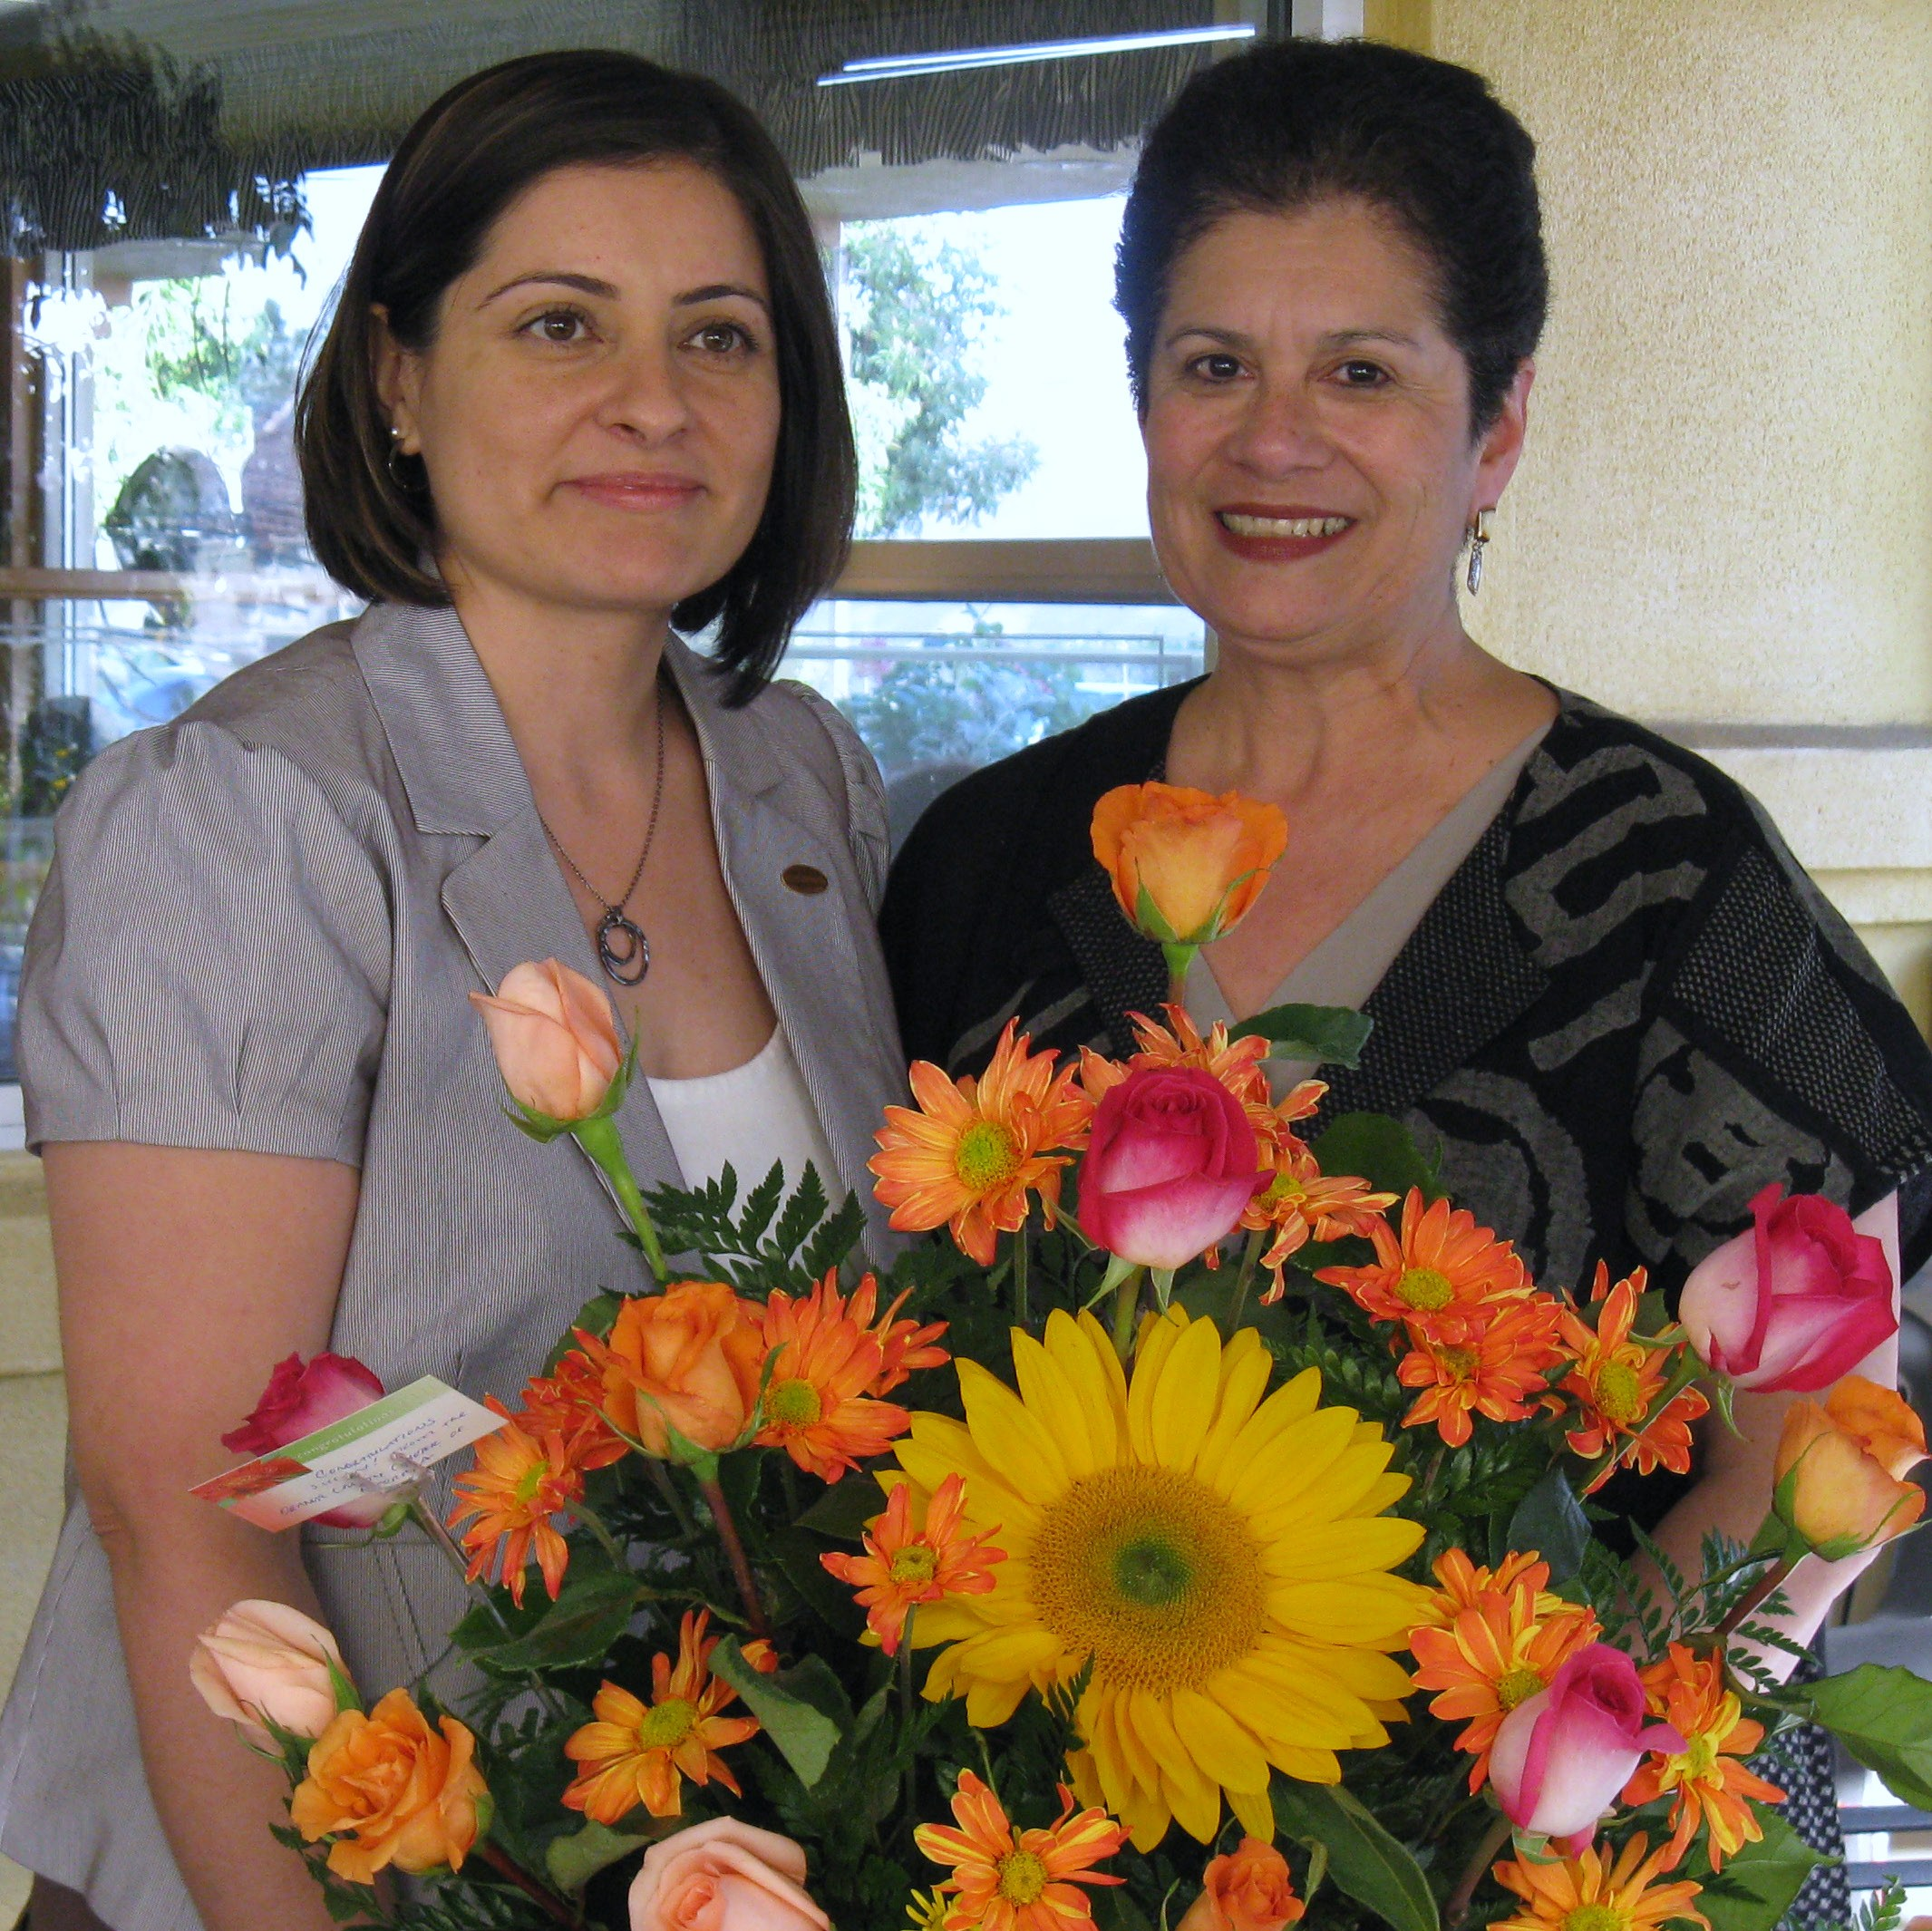 OC Chapter President Monica Lopez presents flowers to 2009 LOTY recipient, Susan Luevano